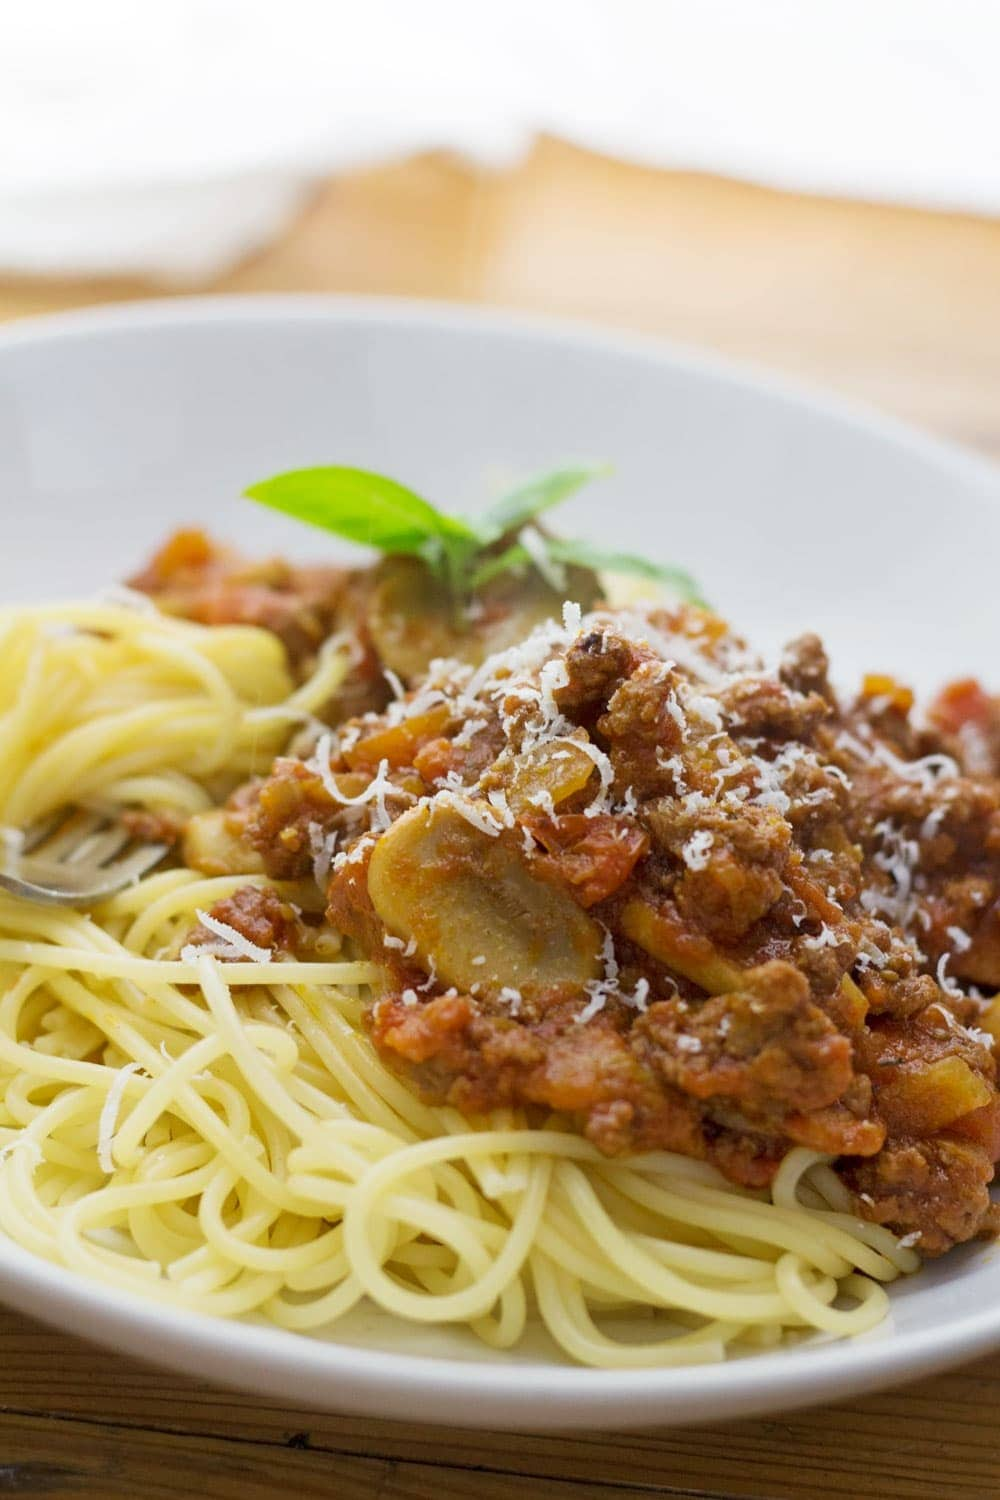 This beef, bacon and mushroom ragu is easy, tasty and the perfect comfort food. Serve on top of spaghetti with a shaving of parmesan.